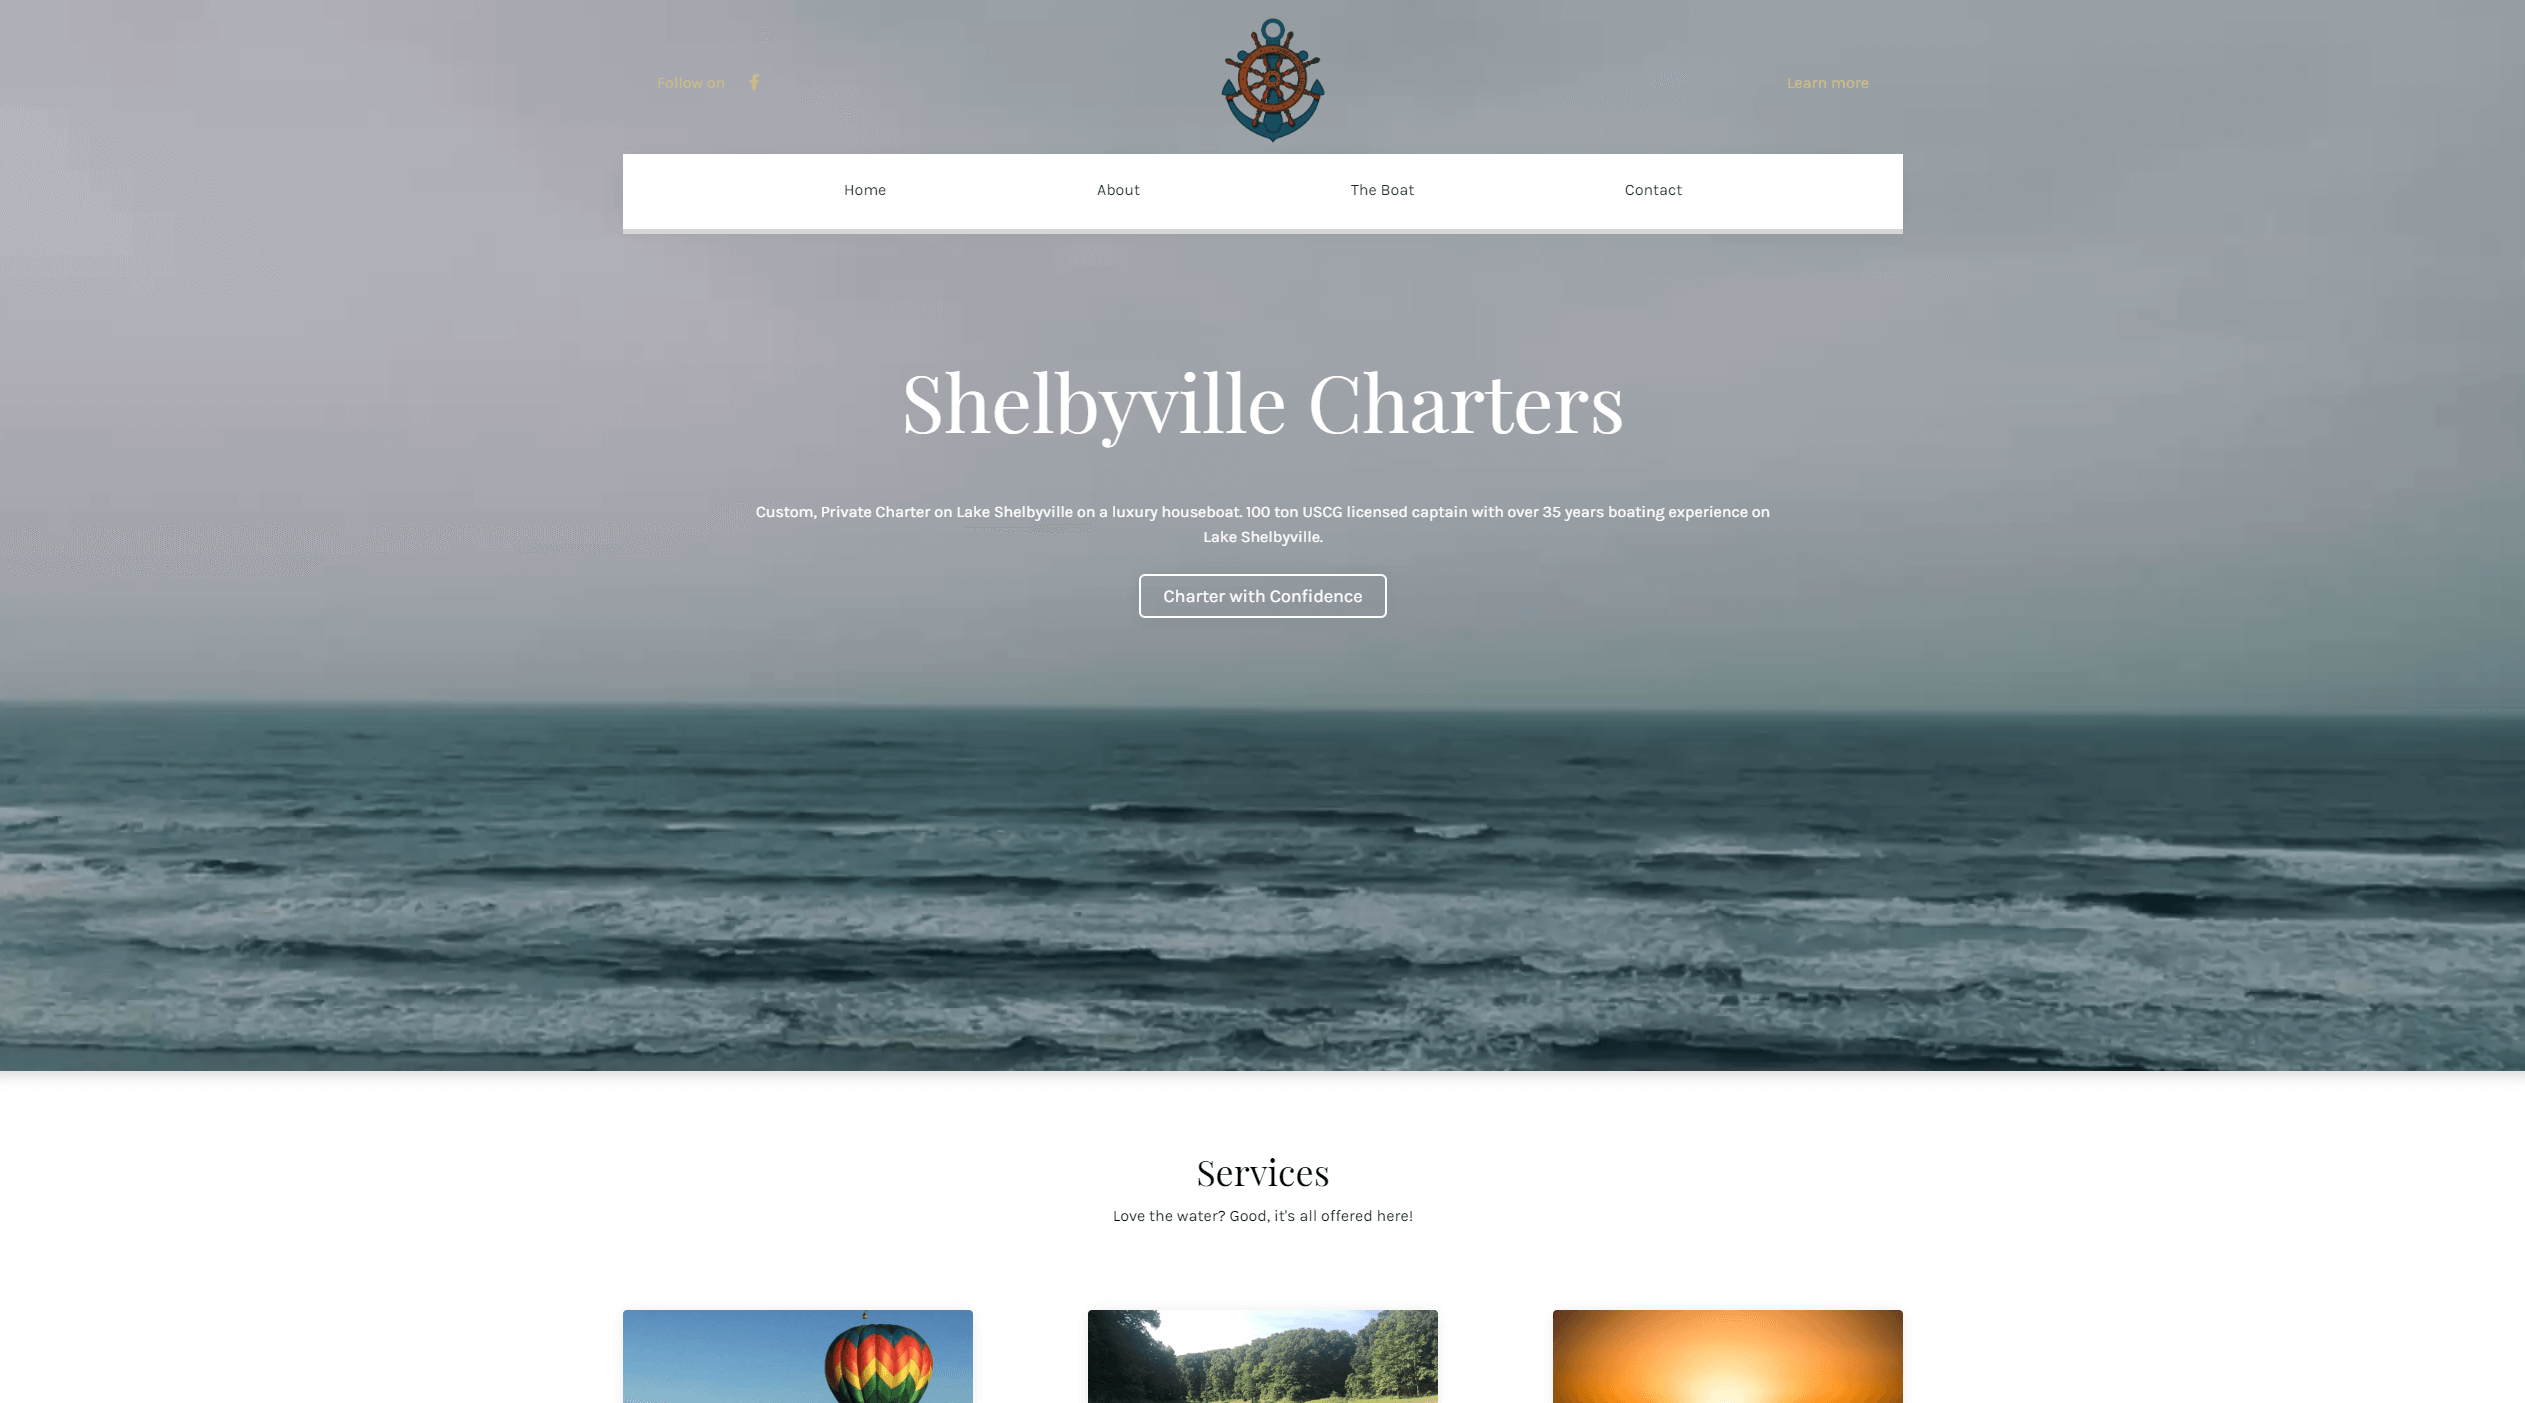 Shelbyville Charters cover image